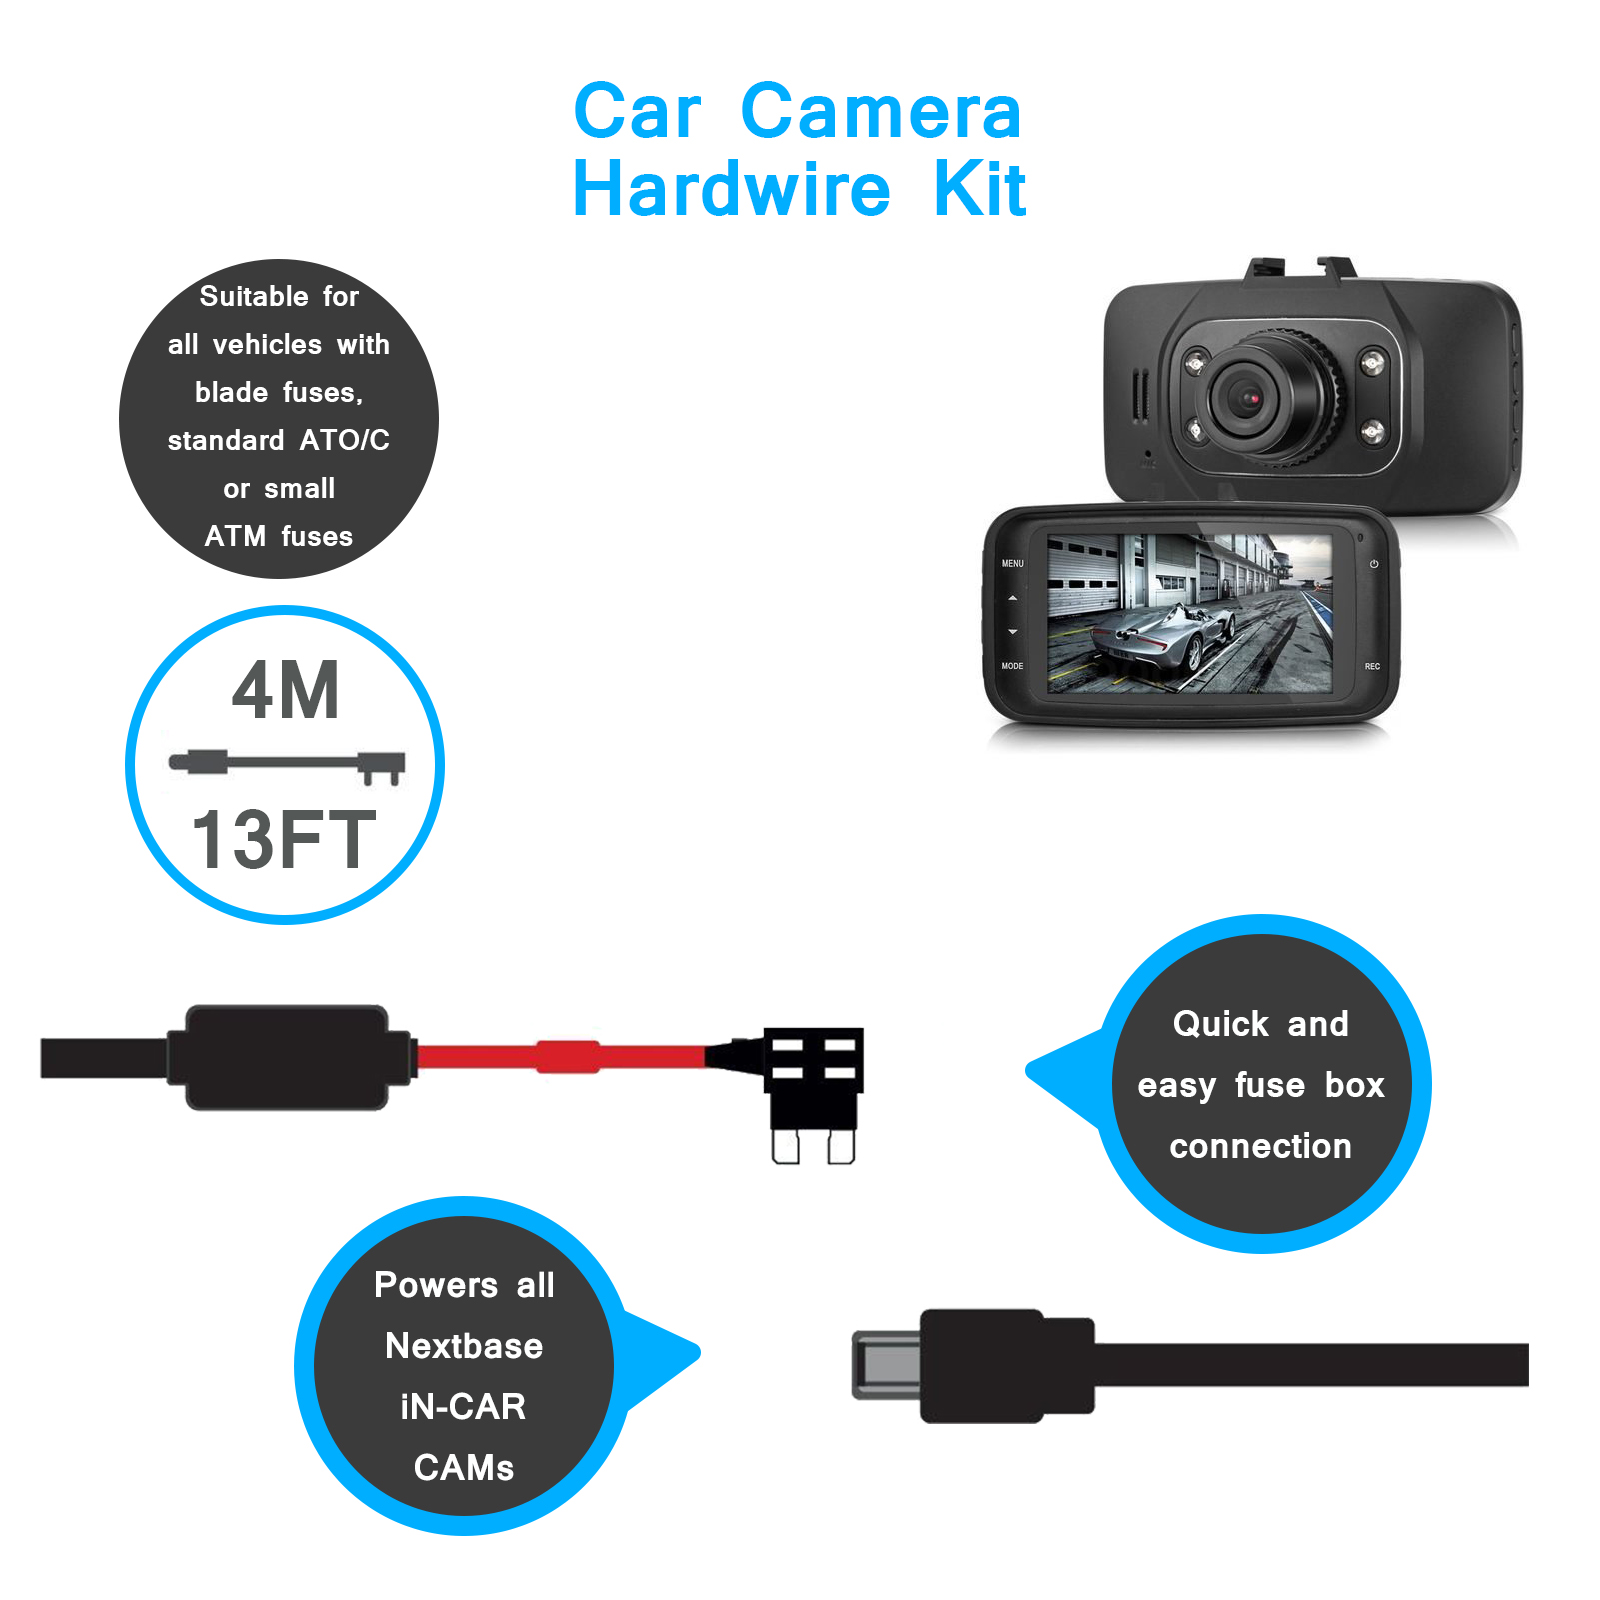 Gad0304bk Newest Hard Wire Kit Car Dash Cam Camera Spy Tec Fuse Box Usb And More Accessories On Carousell